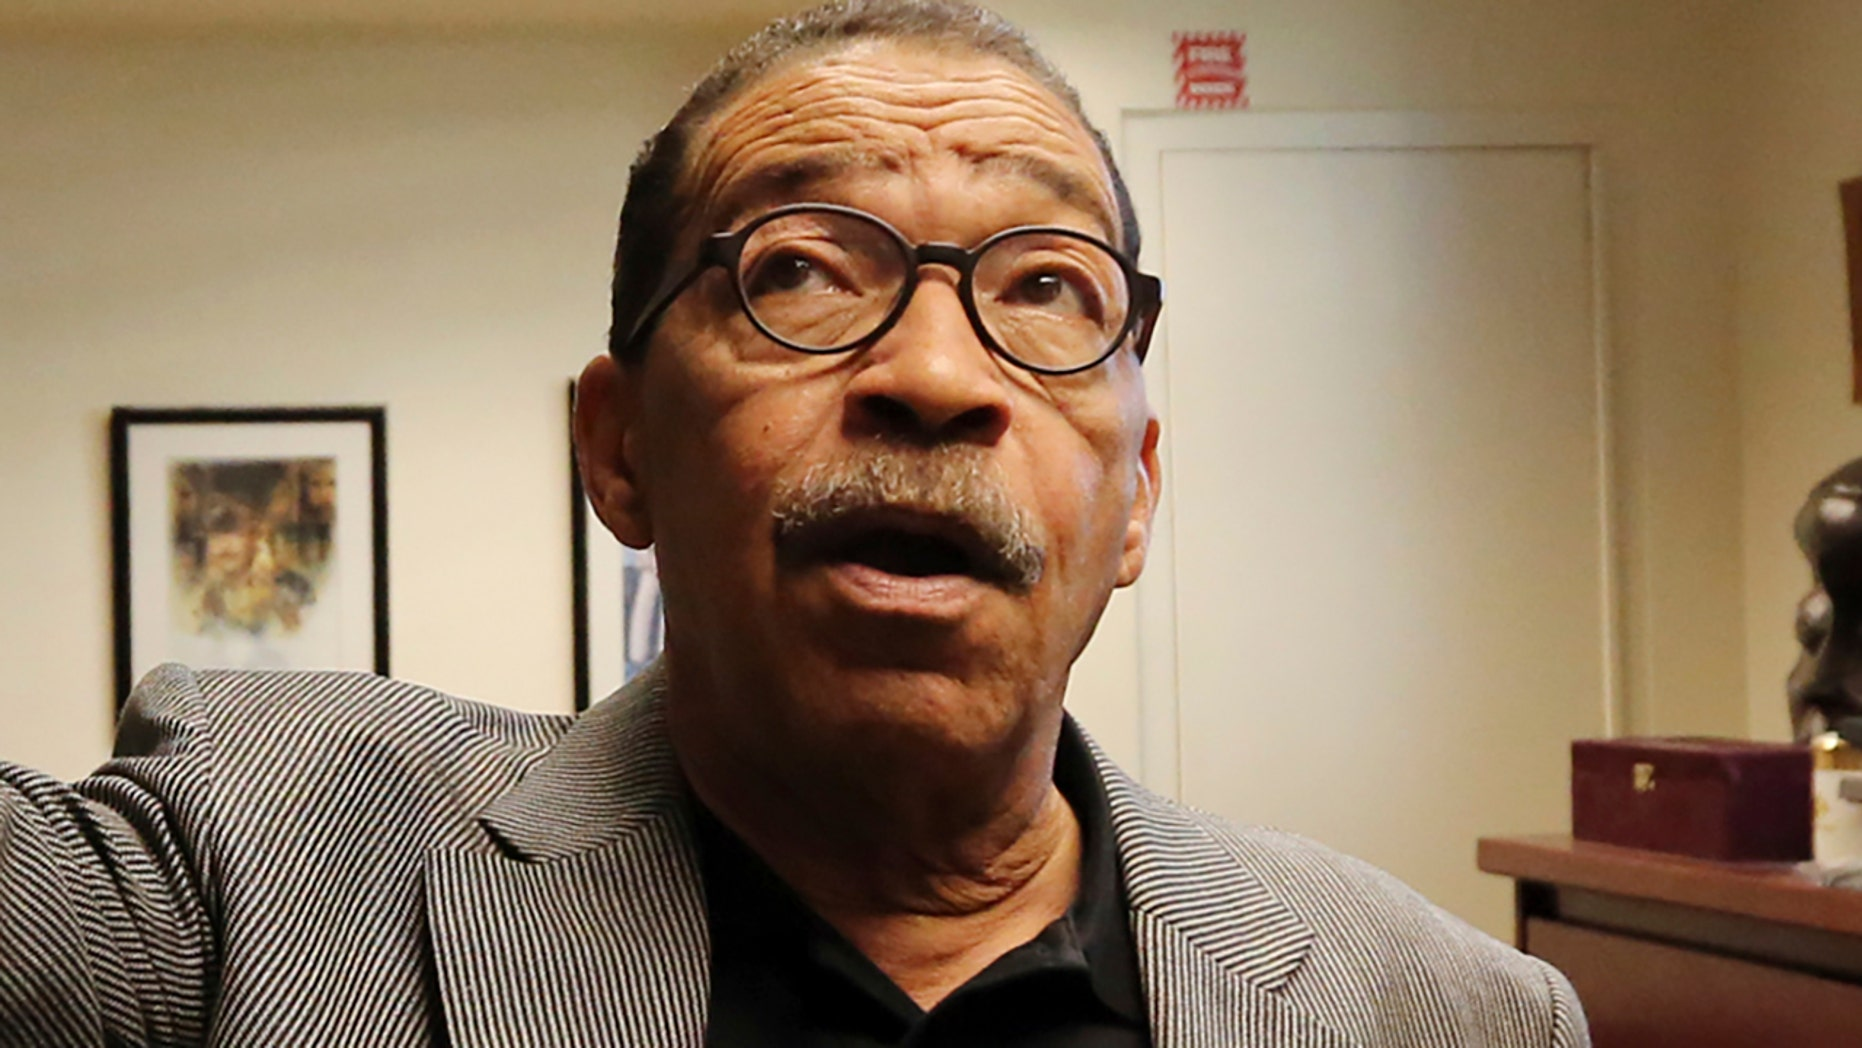 Los Angeles City Council Chairman Herb Wesson describes how his team members have heard the rustle of the City Hall